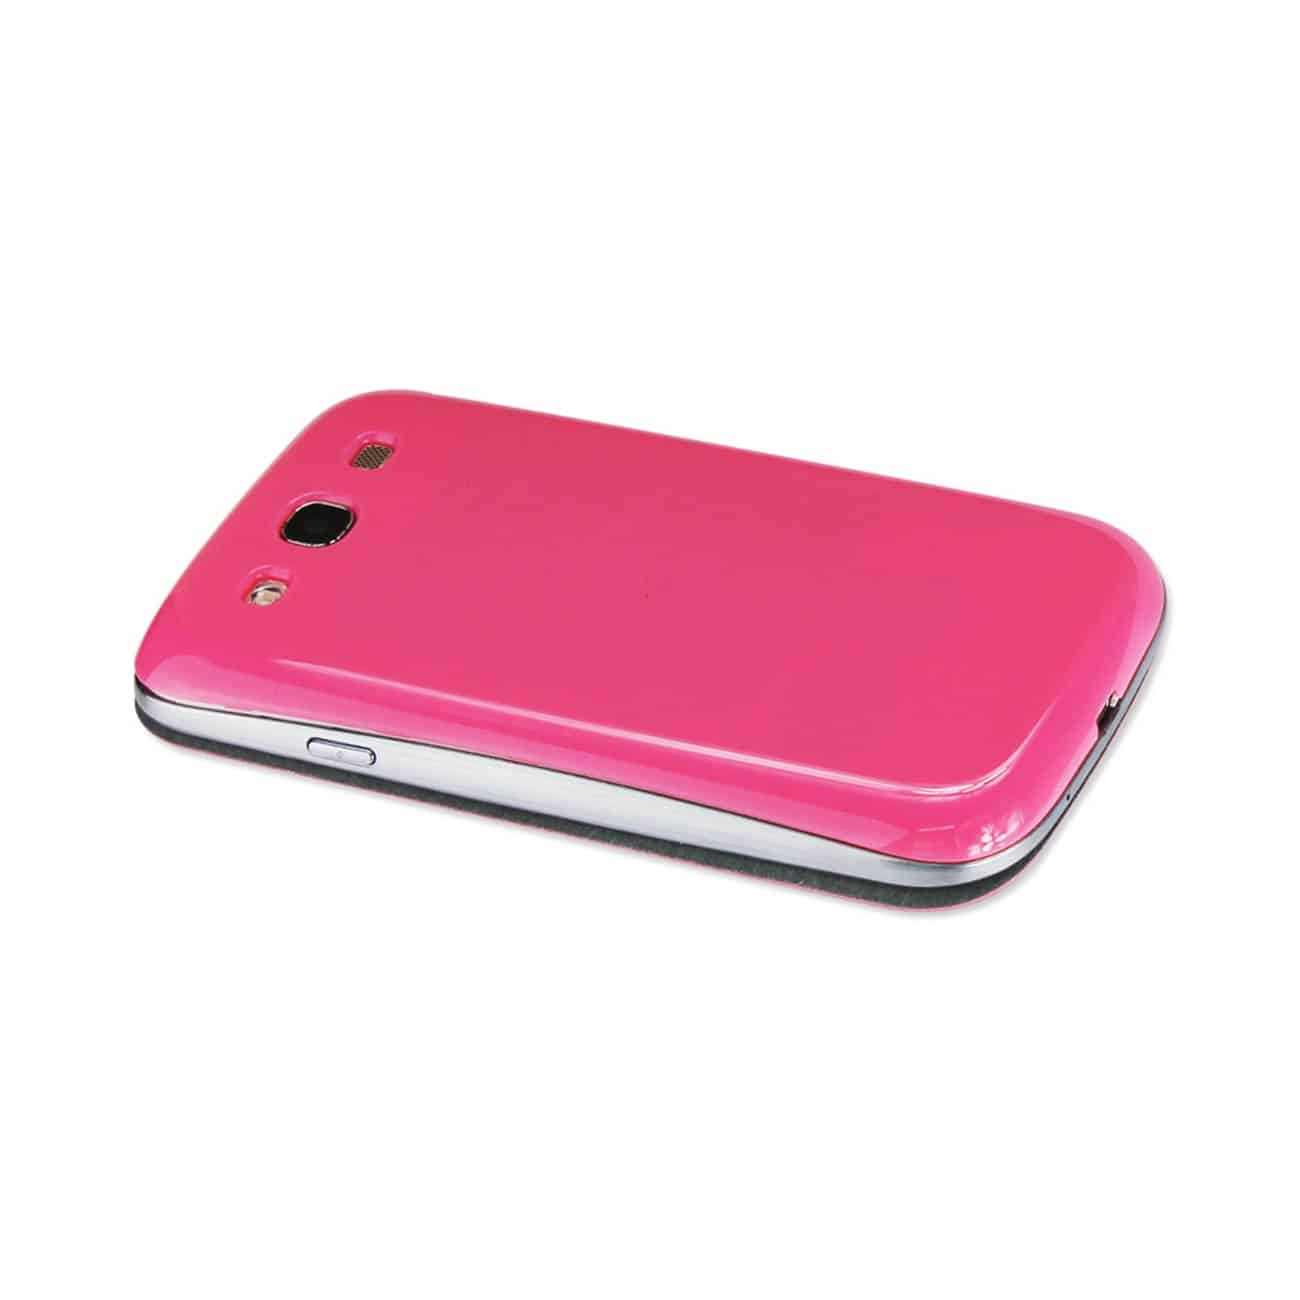 Fitting Case With Battery Cover Samsung Galaxy S3/ I9300 Hot Pink